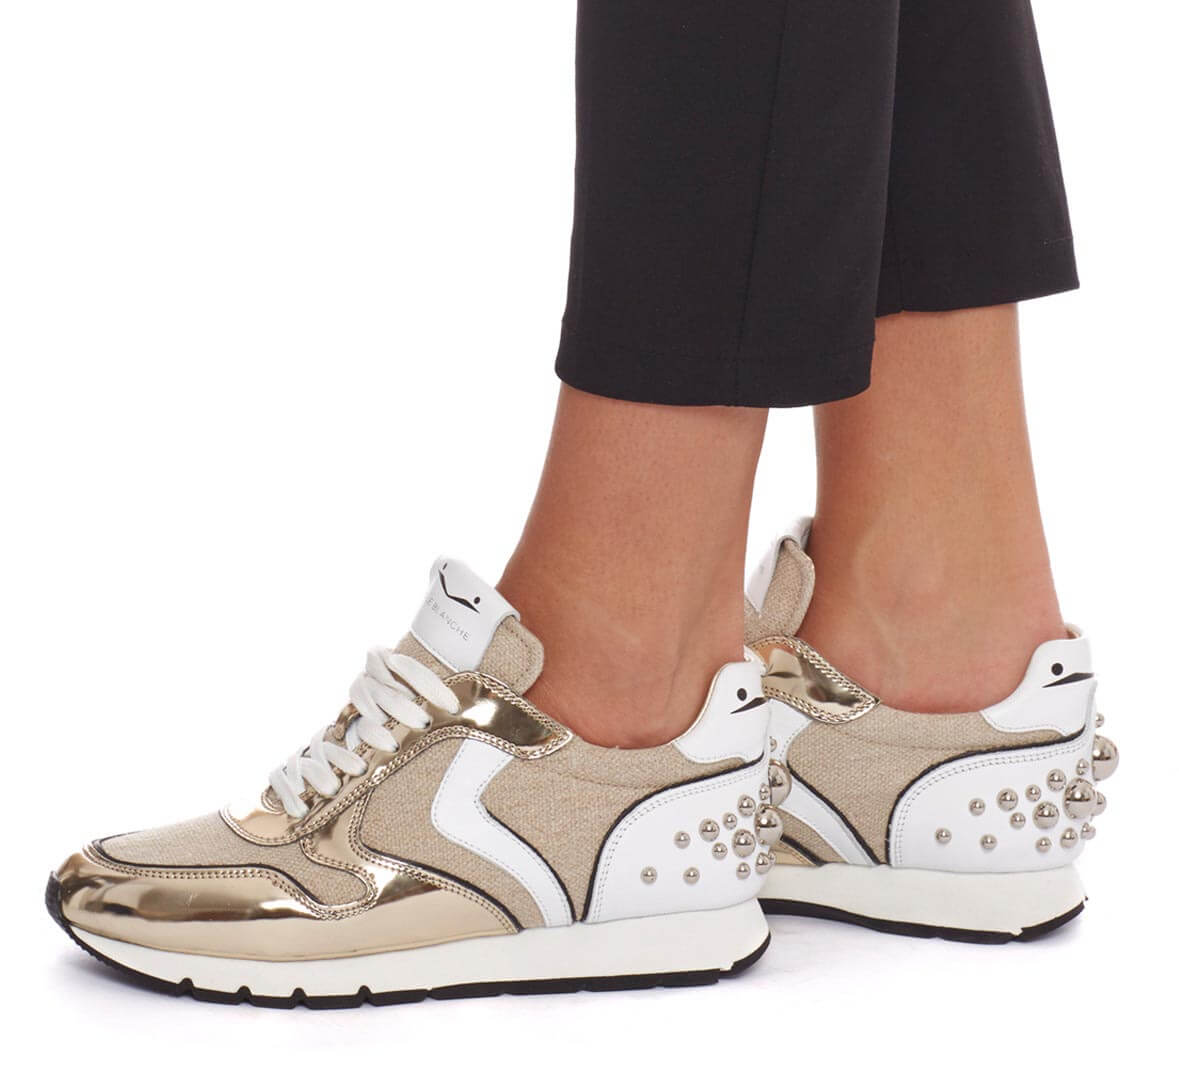 JULIA HEEL BUBBLE - LEATHERT AND FABRIC SNEAKERS - PLATINUM - Voile Blanche